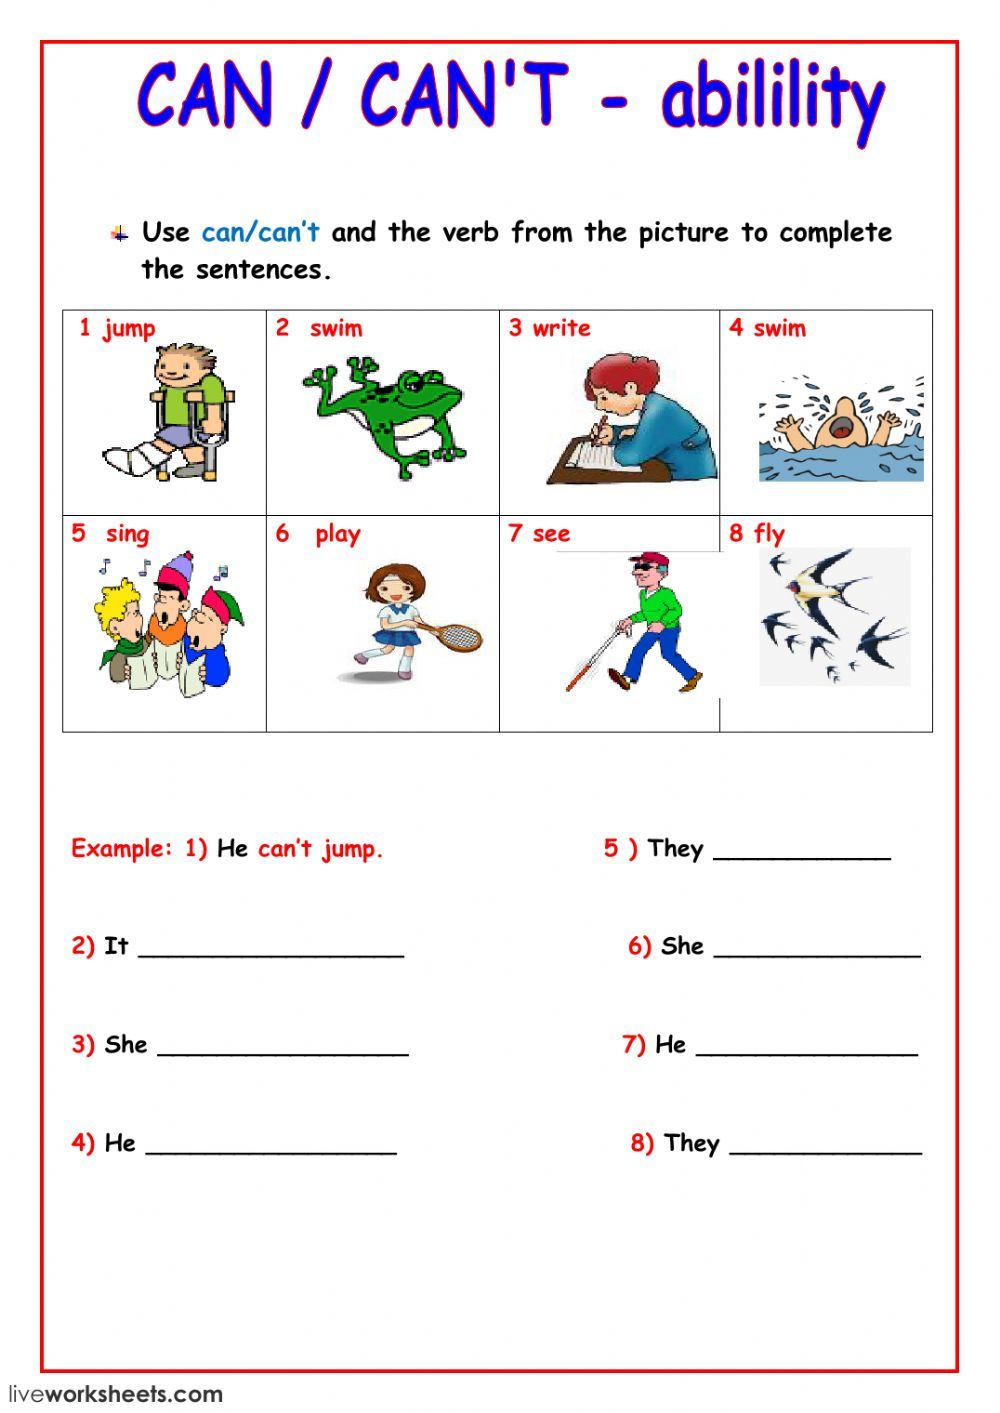 Can Can T Interactive Worksheet Grammar For Kids English Lessons For Kids English Grammar For Kids [ 1413 x 1000 Pixel ]